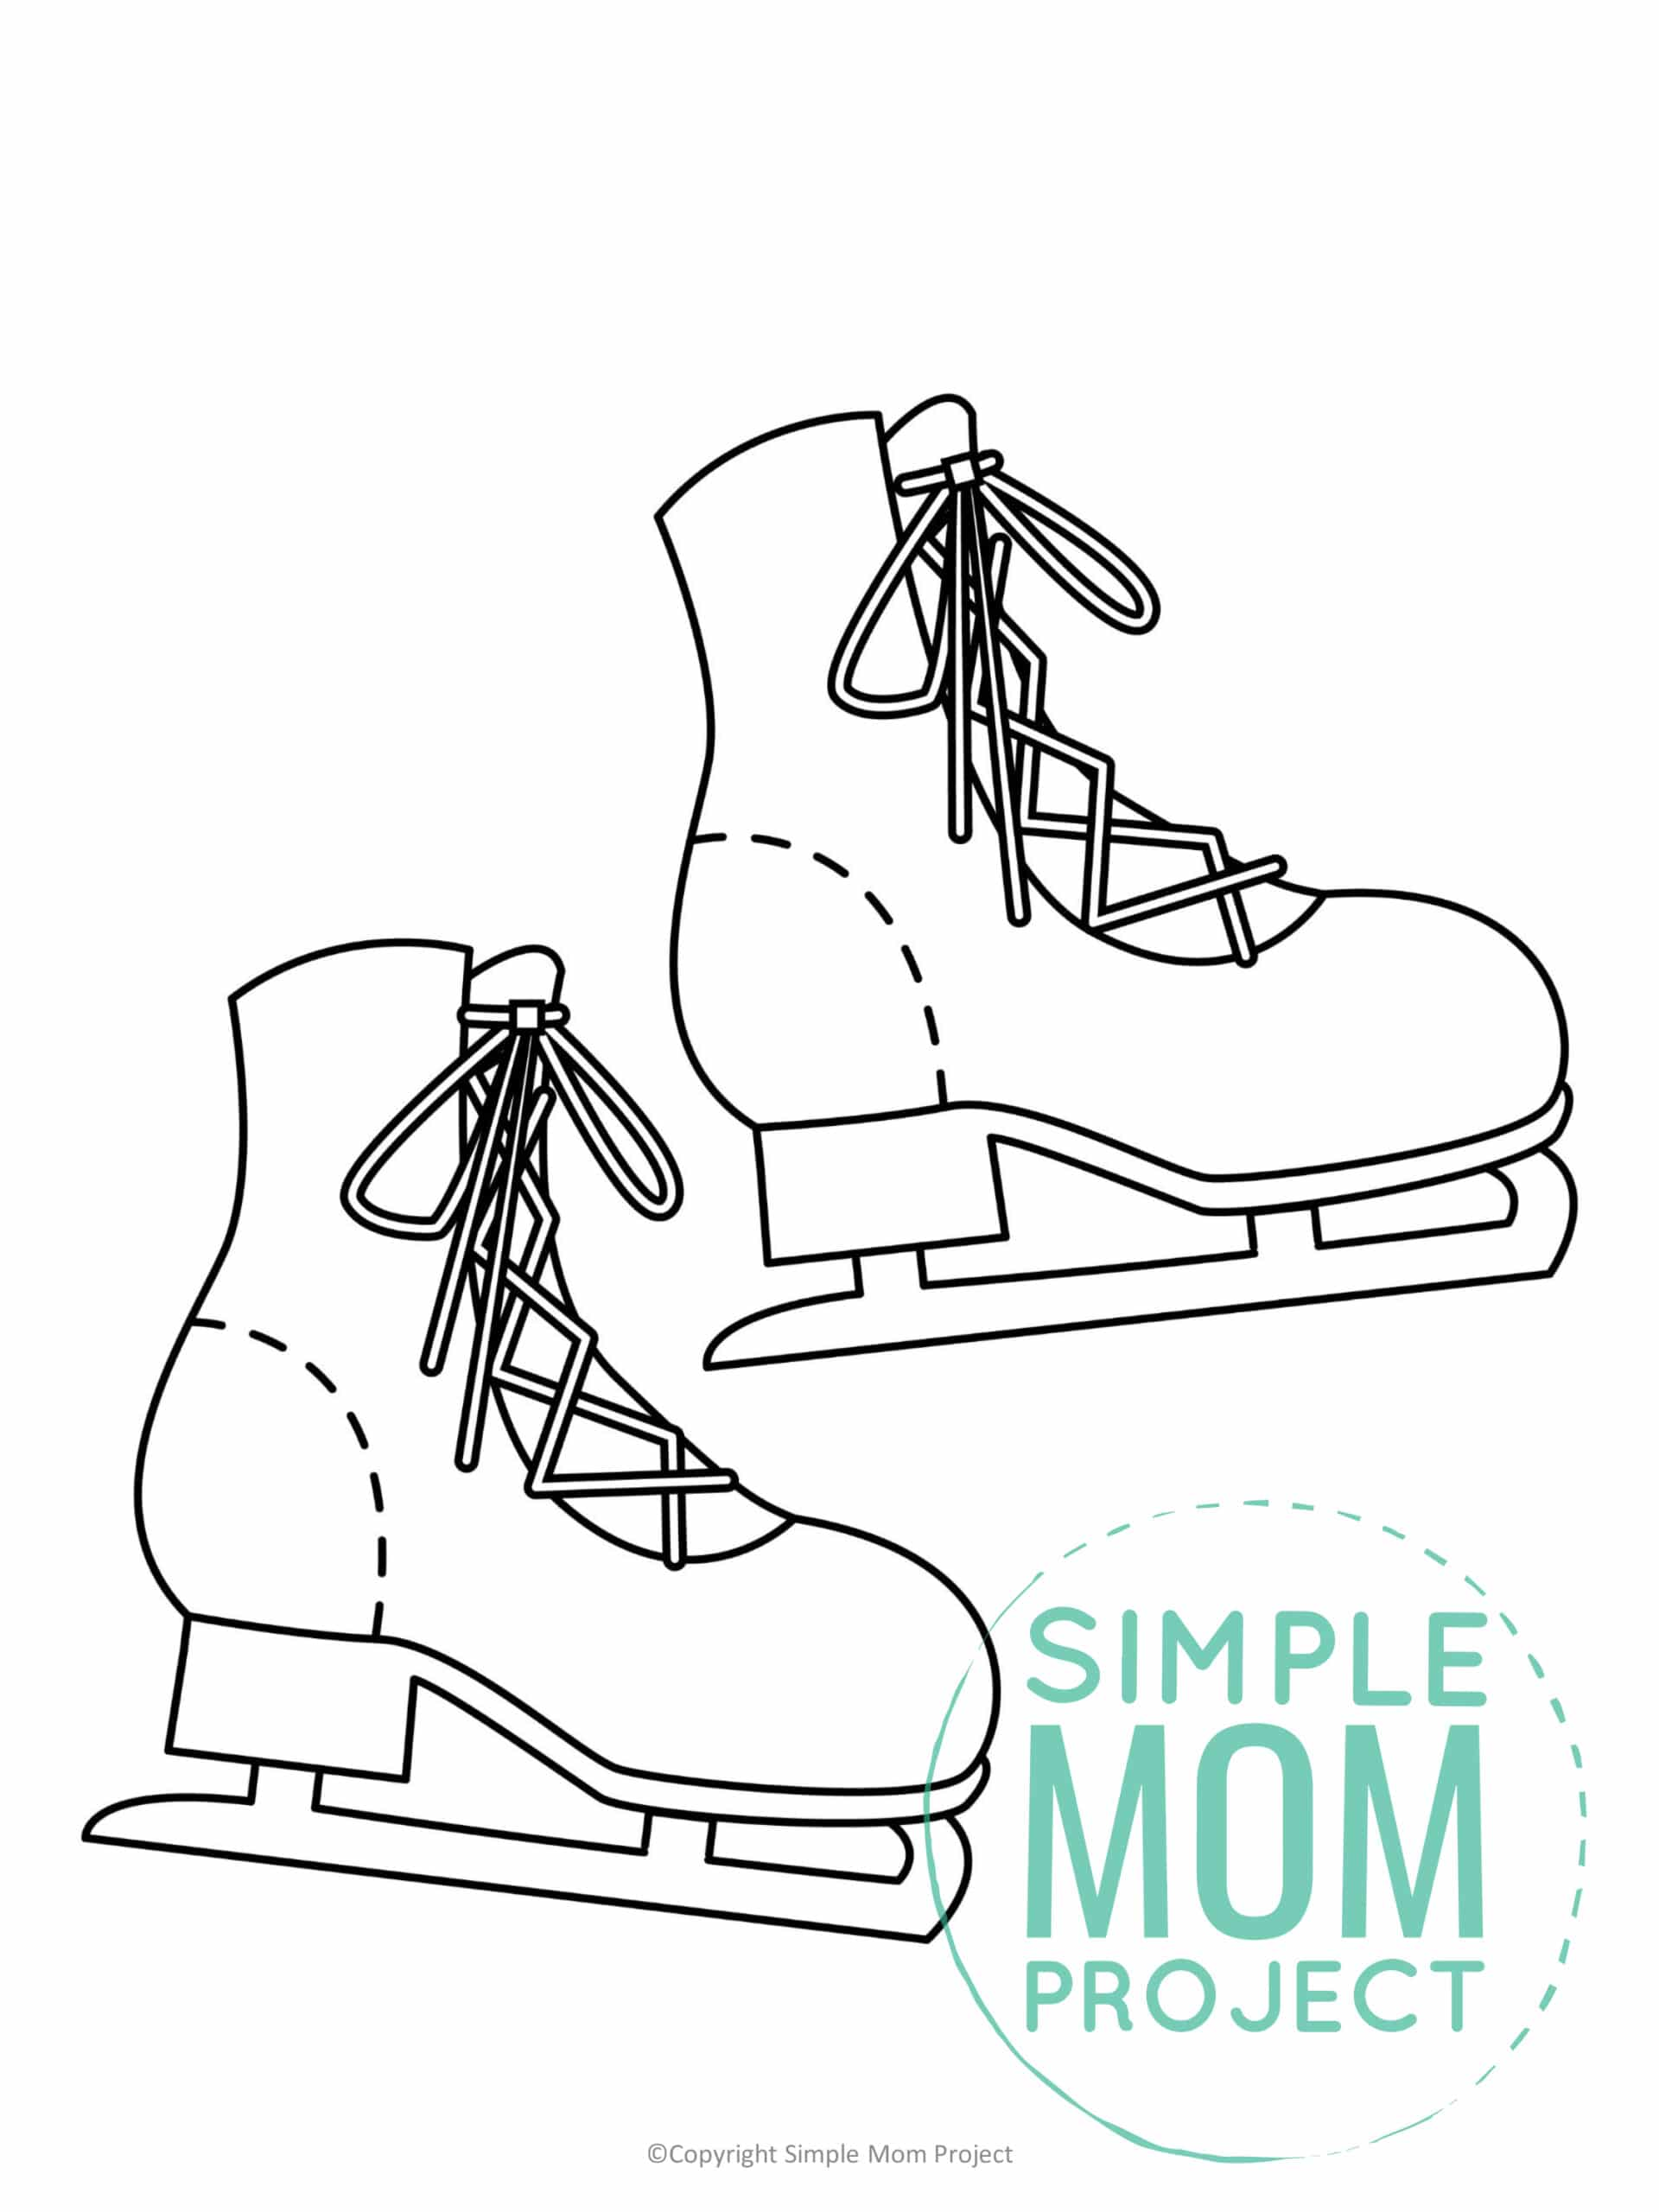 Printable Skate Template coloring page for preschoolers, toddlers and kindergartners 1